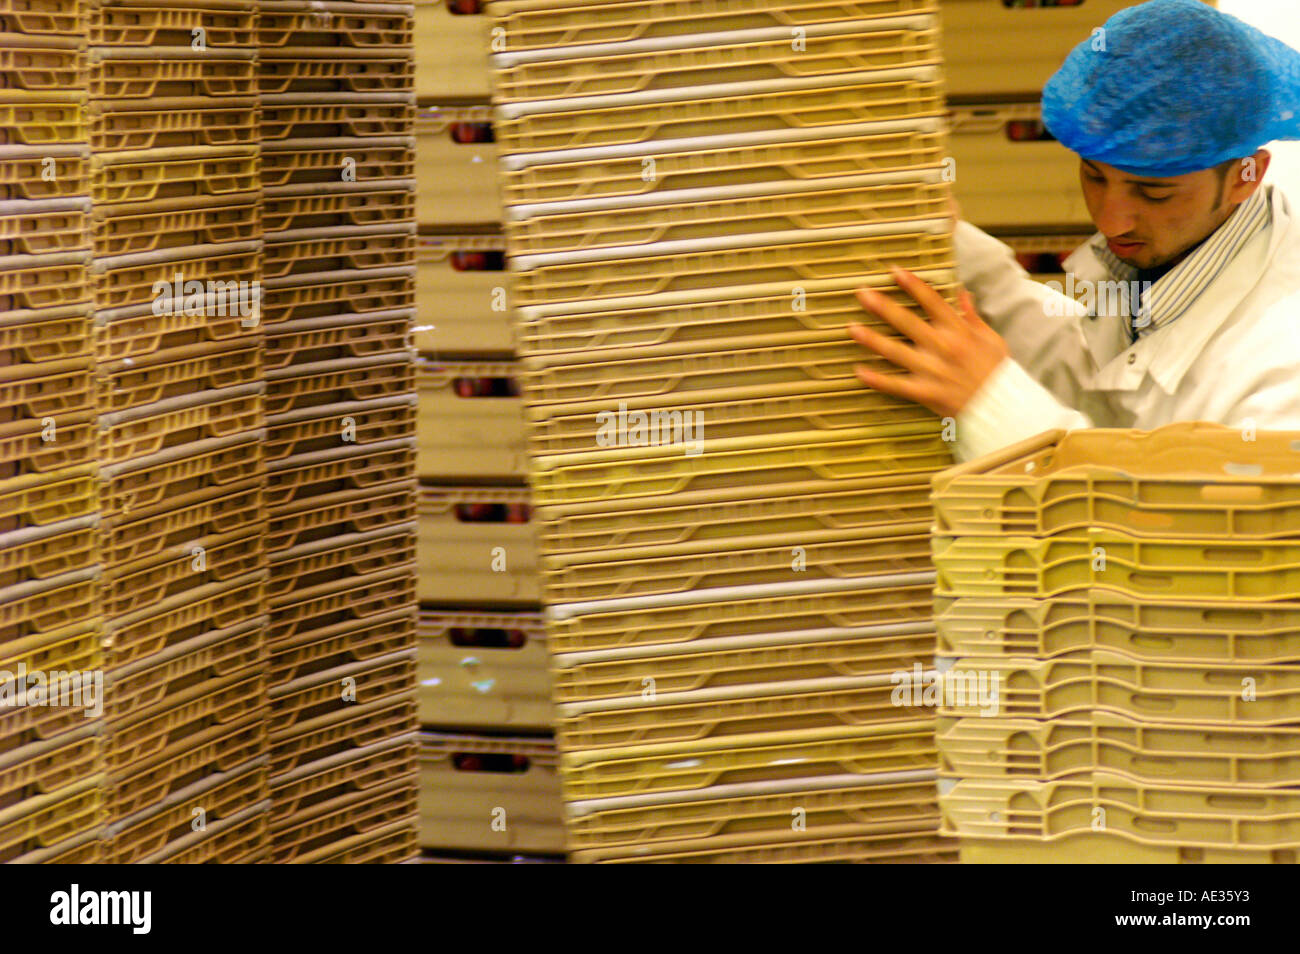 Desperate worker in packhouse, England - Stock Image